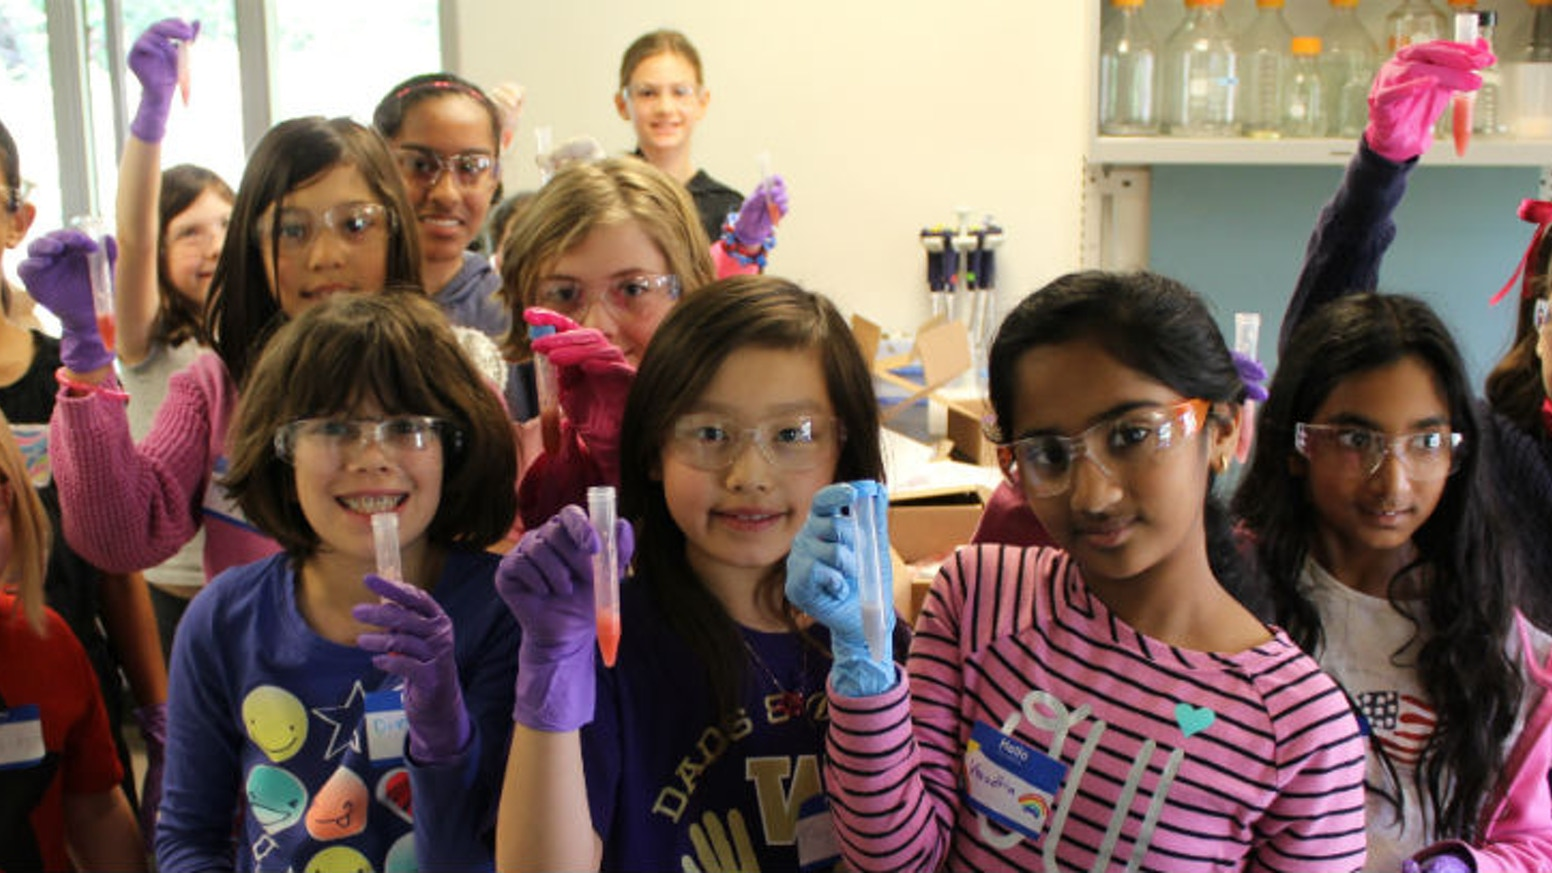 STEMbox is a subscription box that makes real science accessible to young girls and empowers them as young scientists.